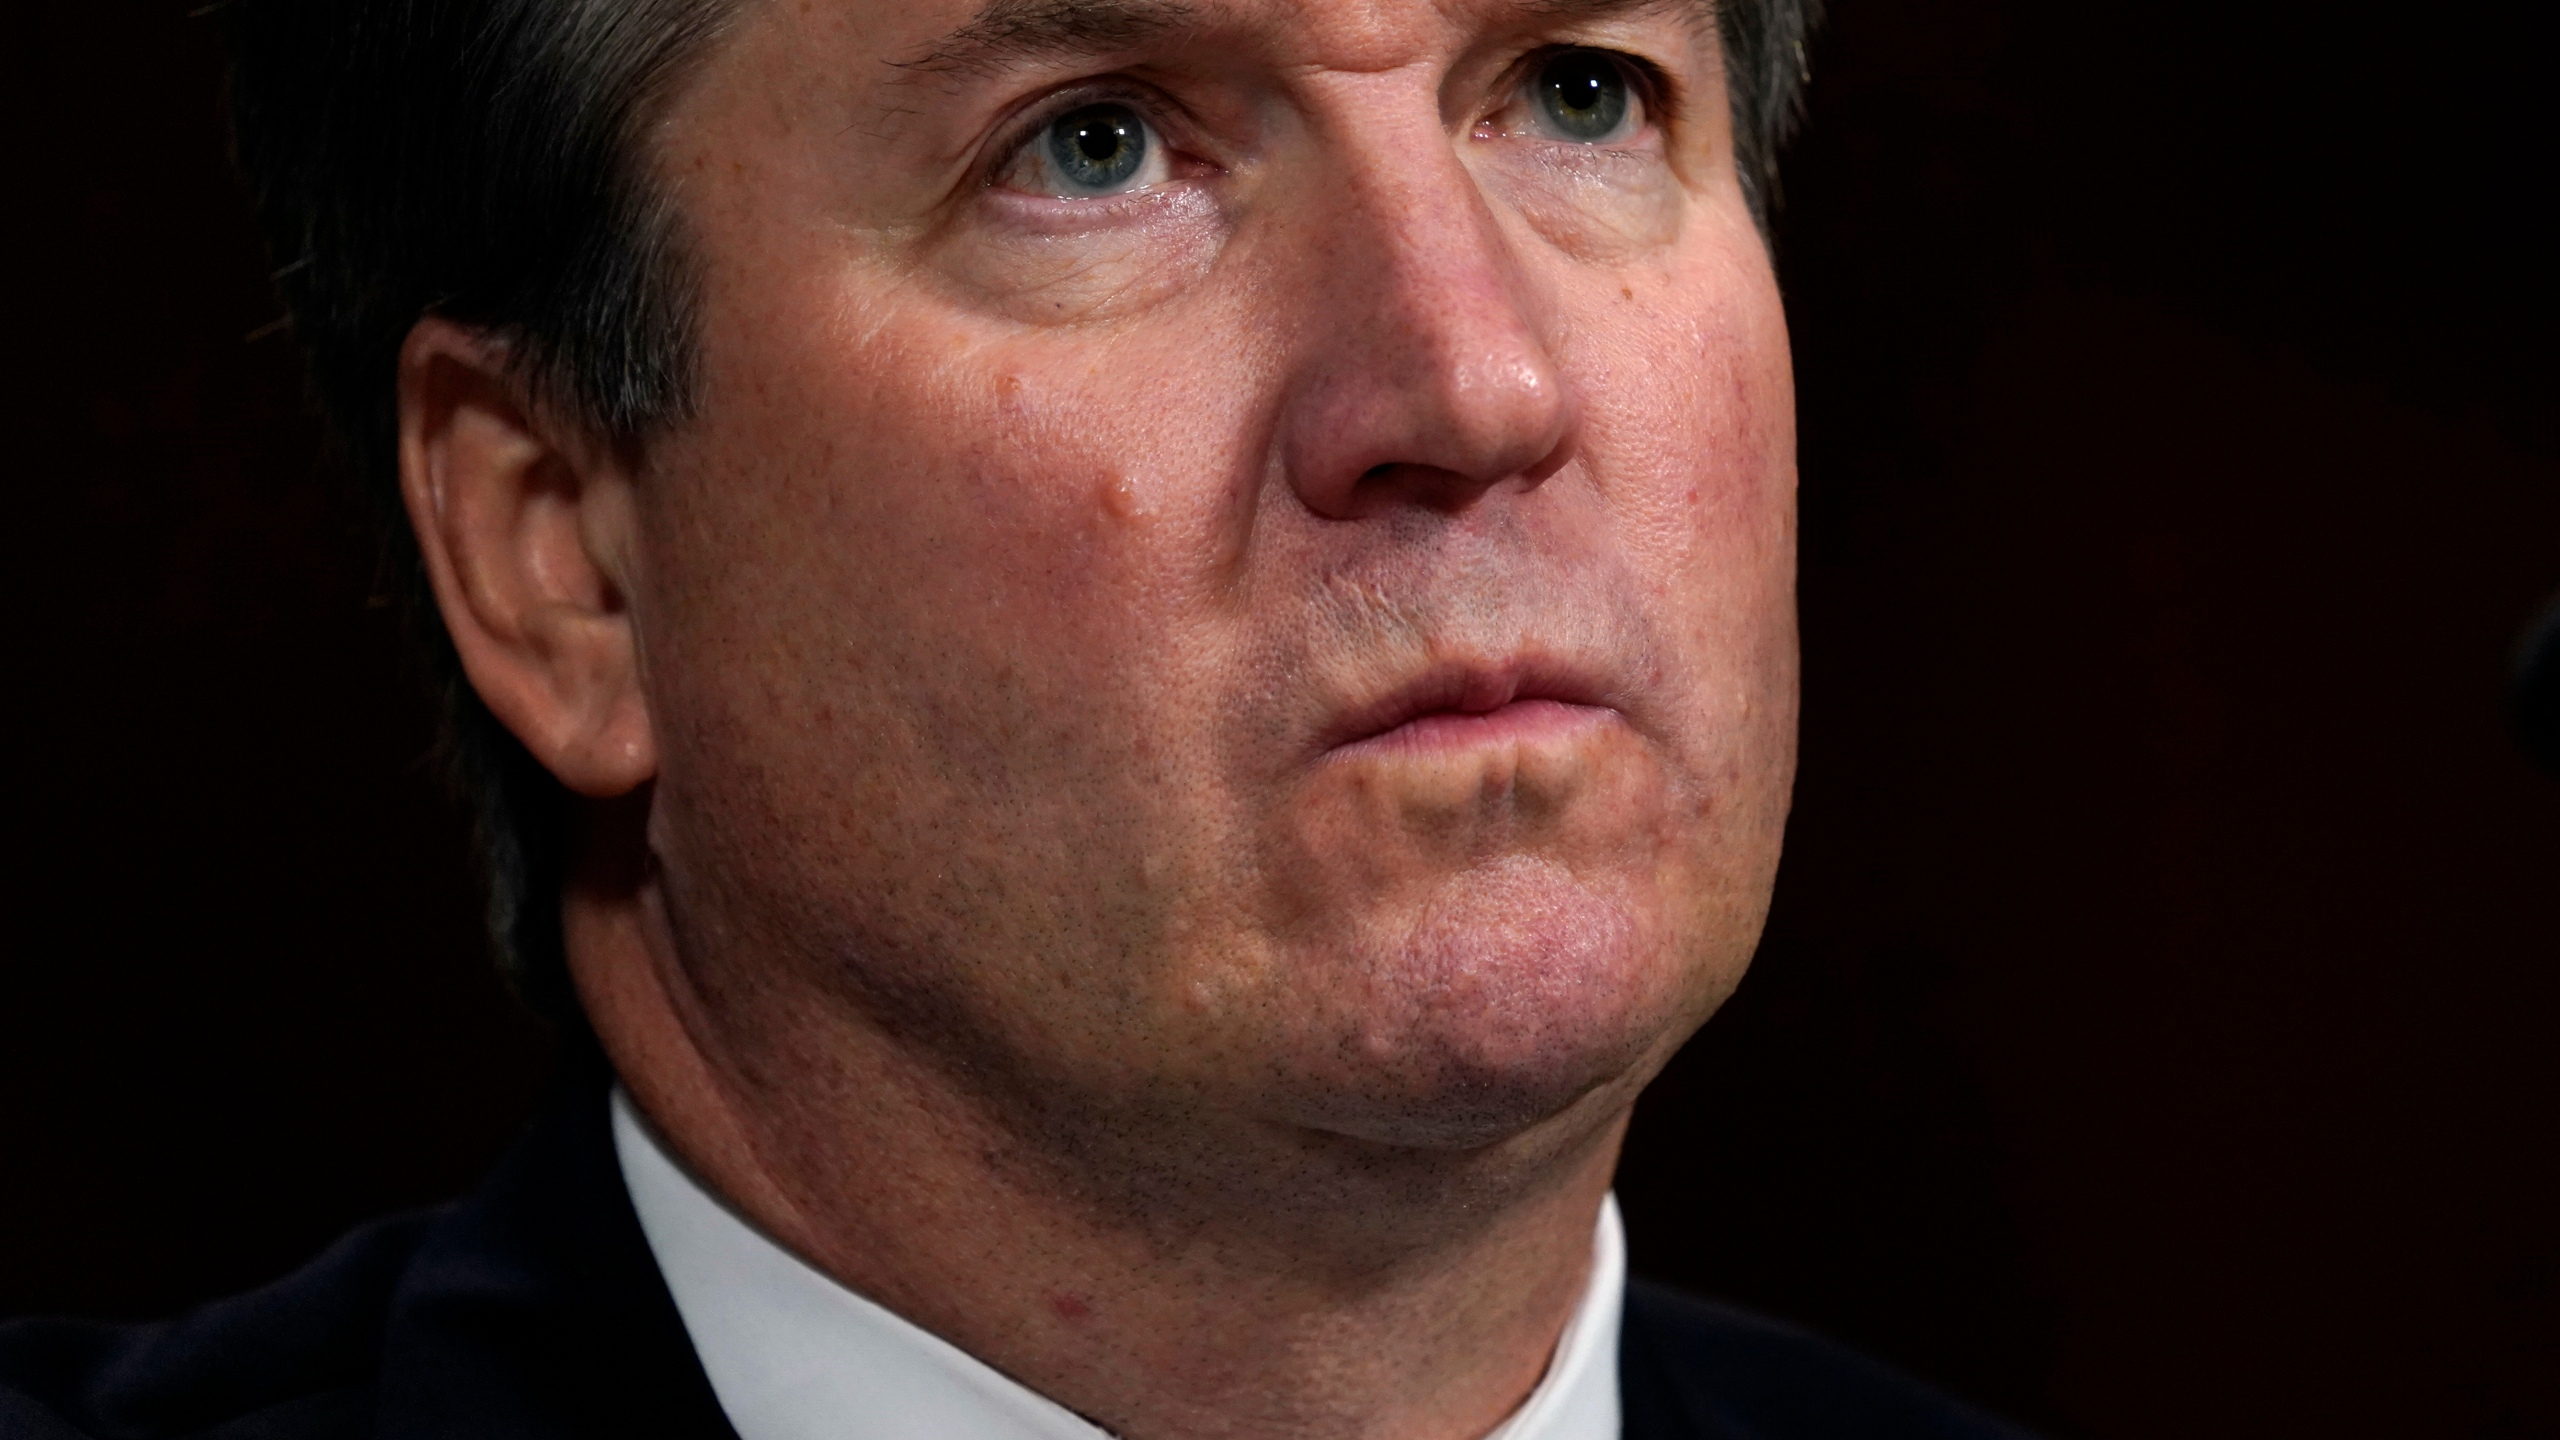 Supreme_Court_Kavanaugh_85997-159532.jpg13798955